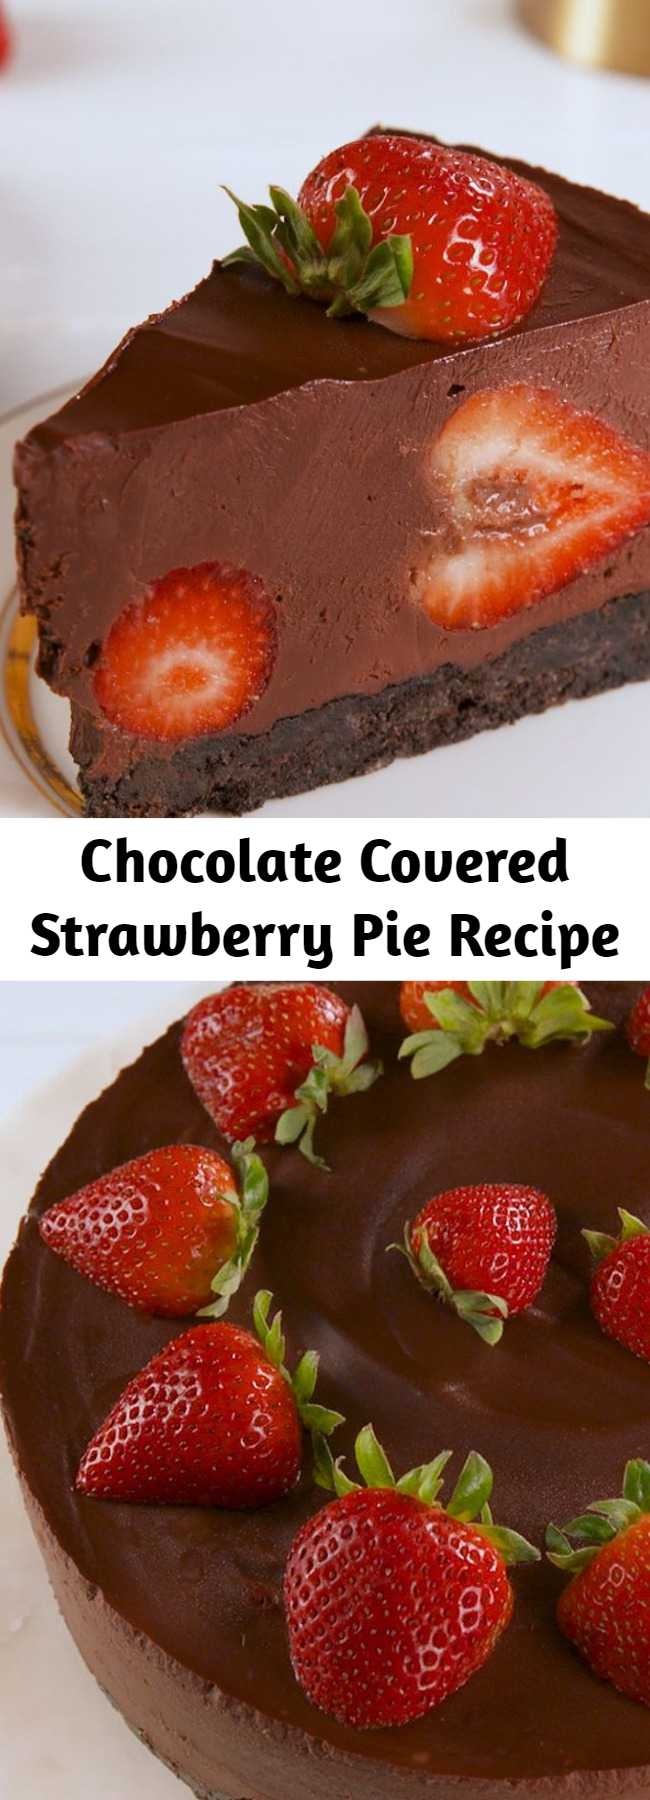 Chocolate Covered Strawberry Pie Recipe - Super impressive looking and surprisingly easy to make, this is the perfect summertime dessert. No oven needed! #dessert #chocolate #pie #easyrecipe #recipe #strawberry #nobake #valentines